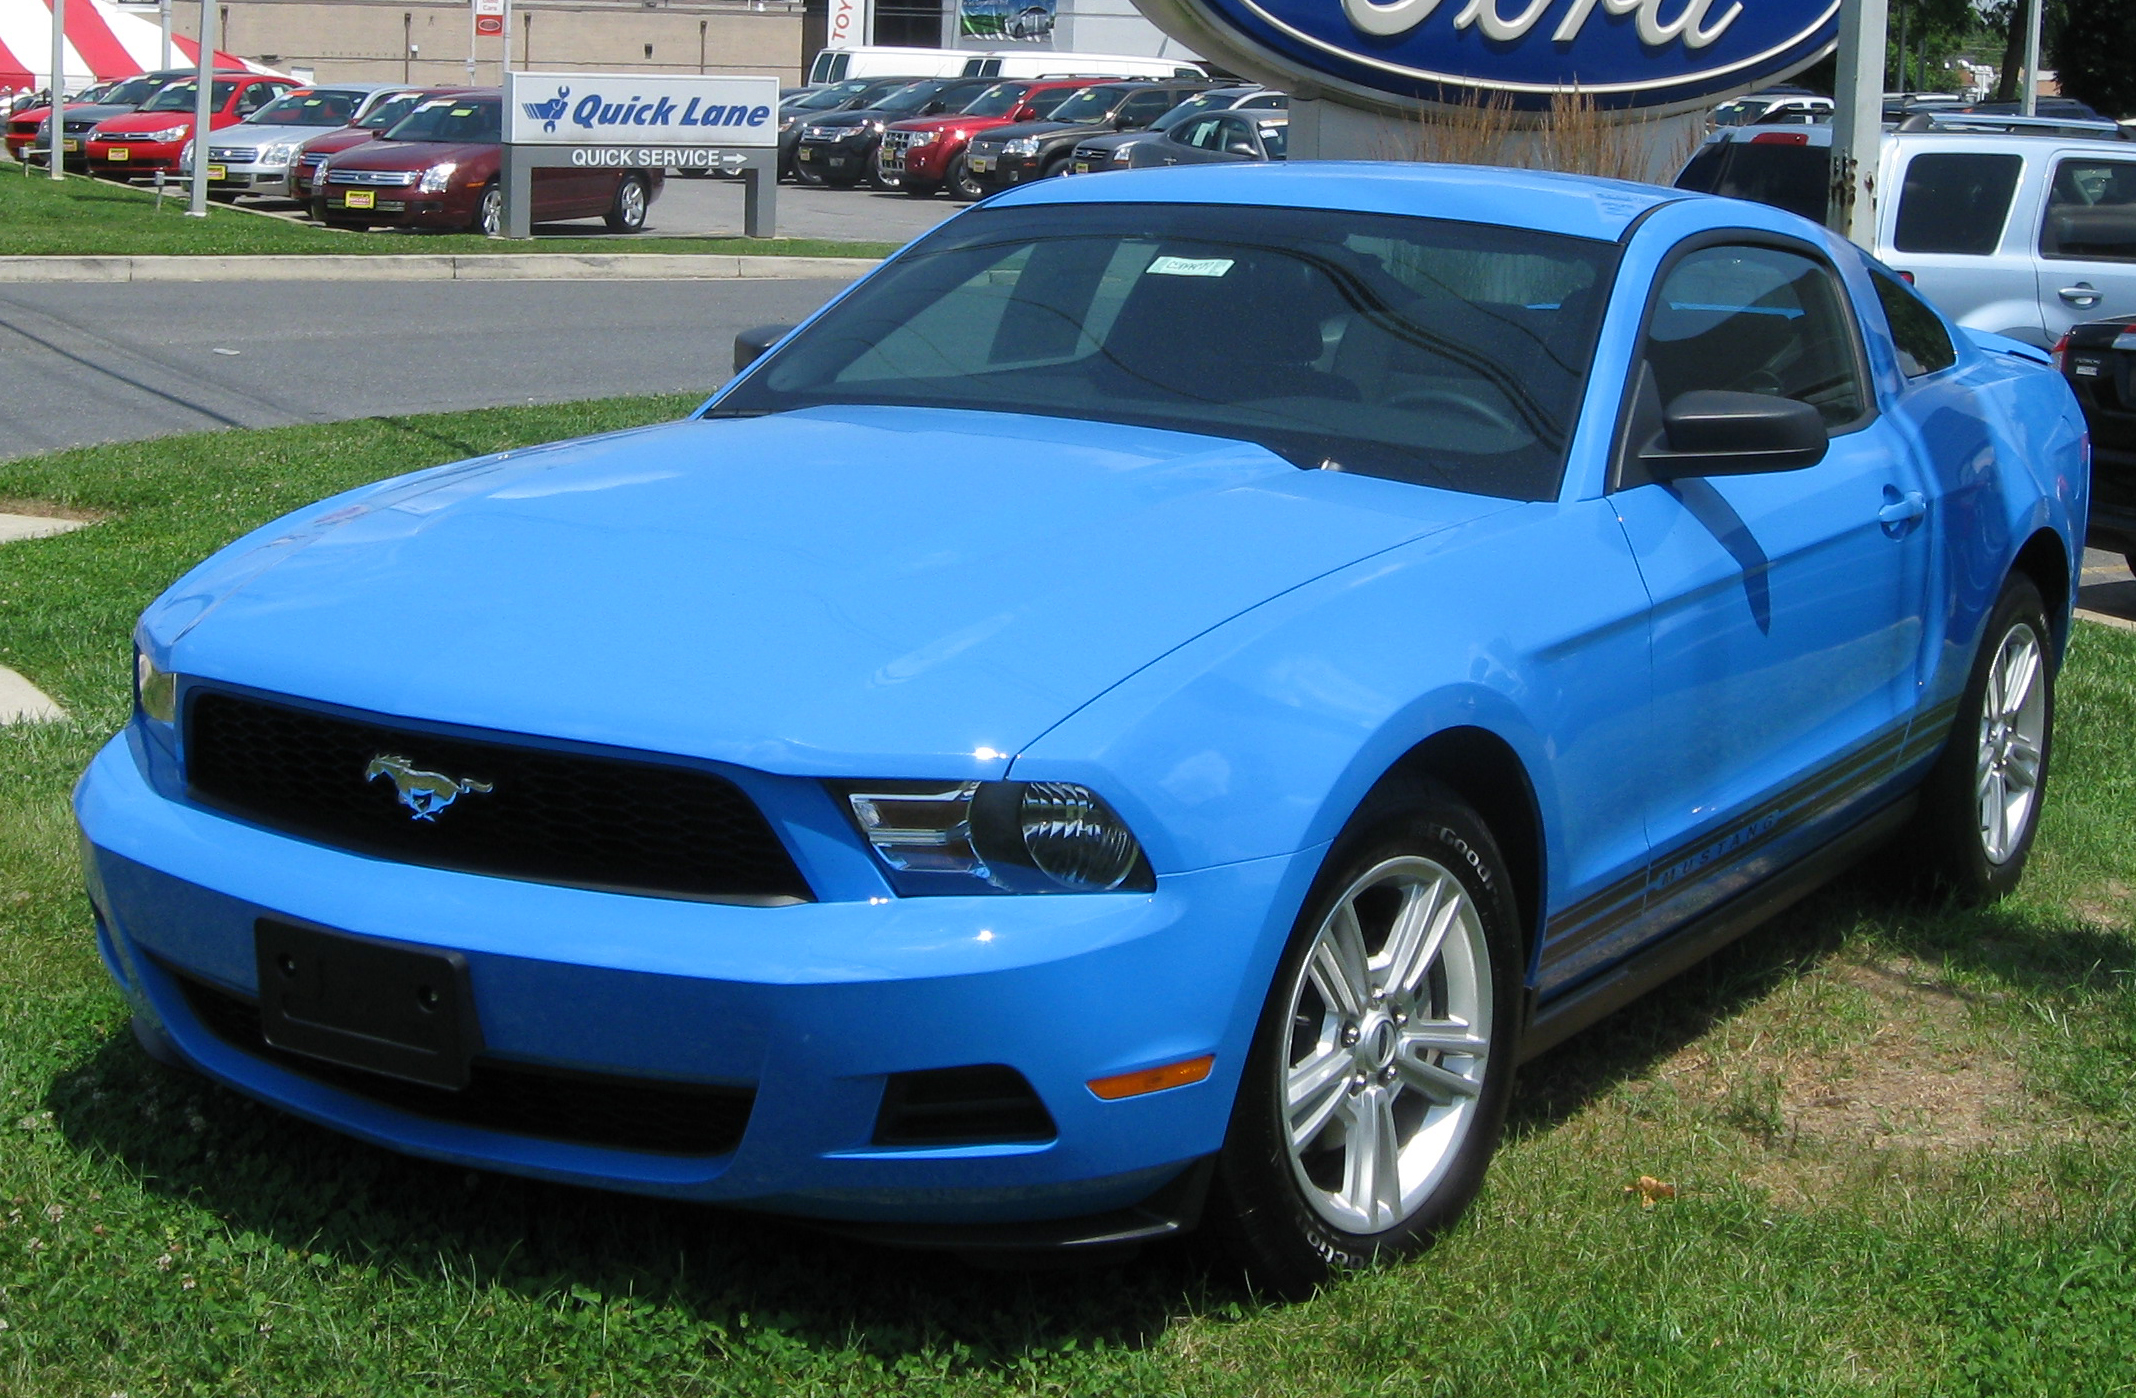 2010 ford mustang v6 blue file 2010 ford mustang v6 2. Black Bedroom Furniture Sets. Home Design Ideas